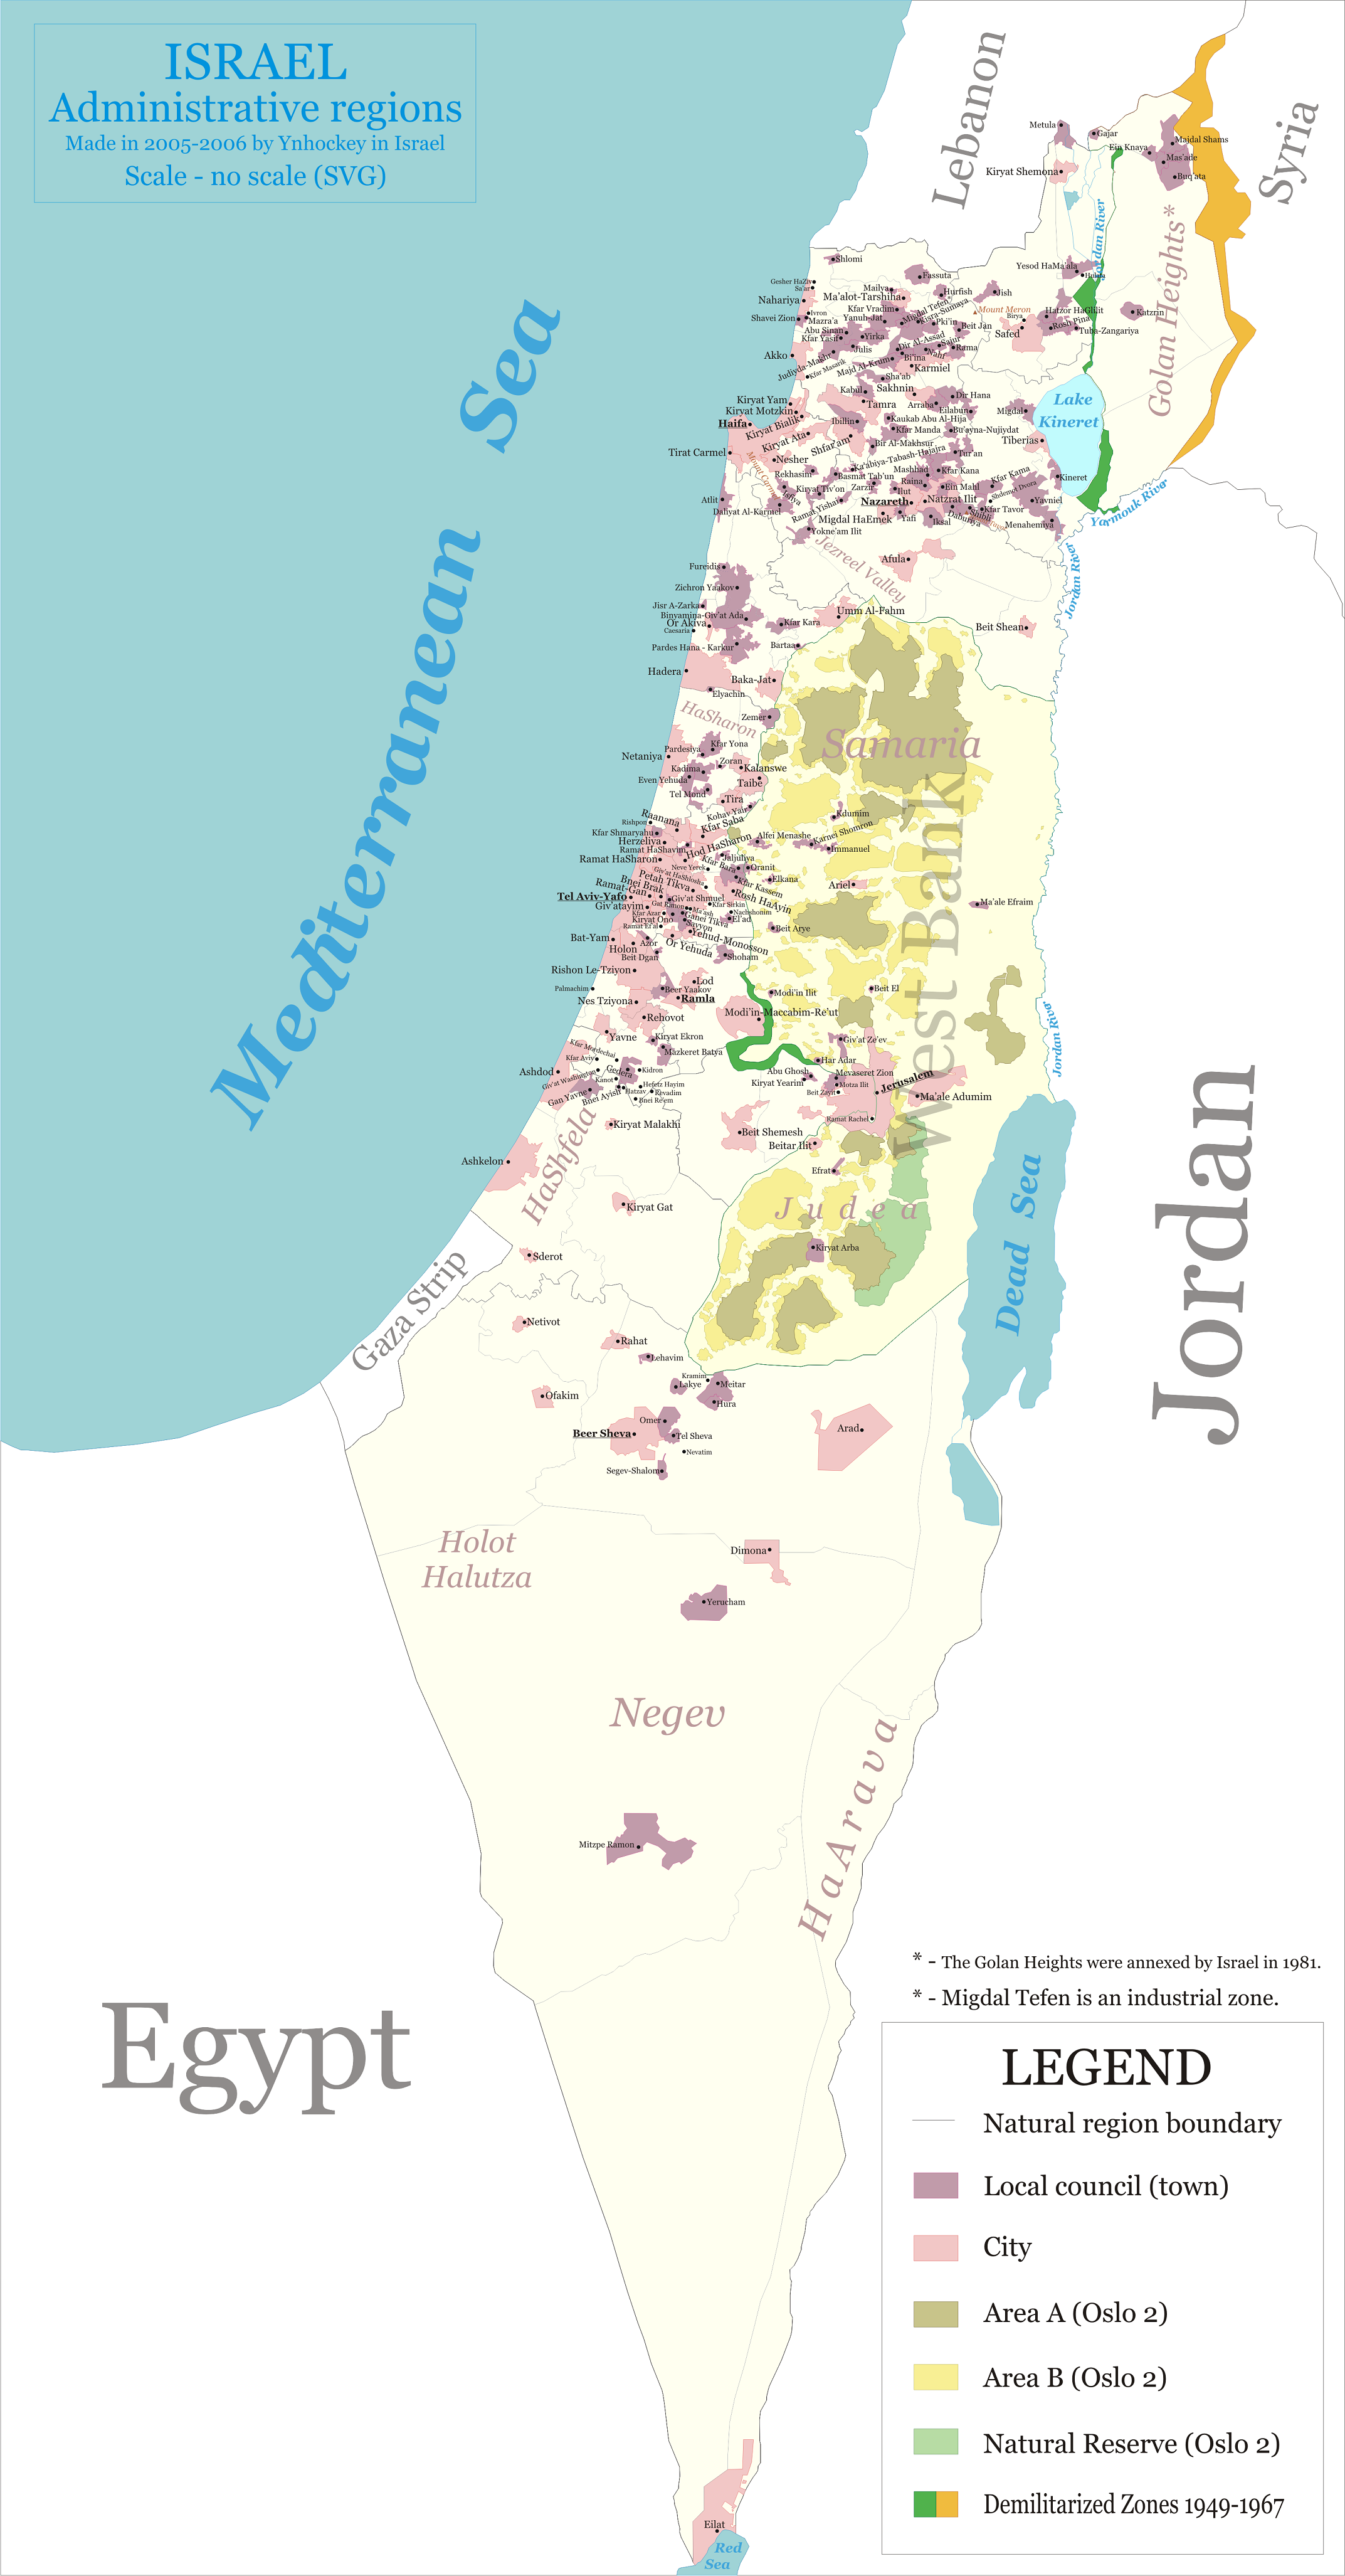 FileMap of administrative regions in Israelpng Wikimedia Commons